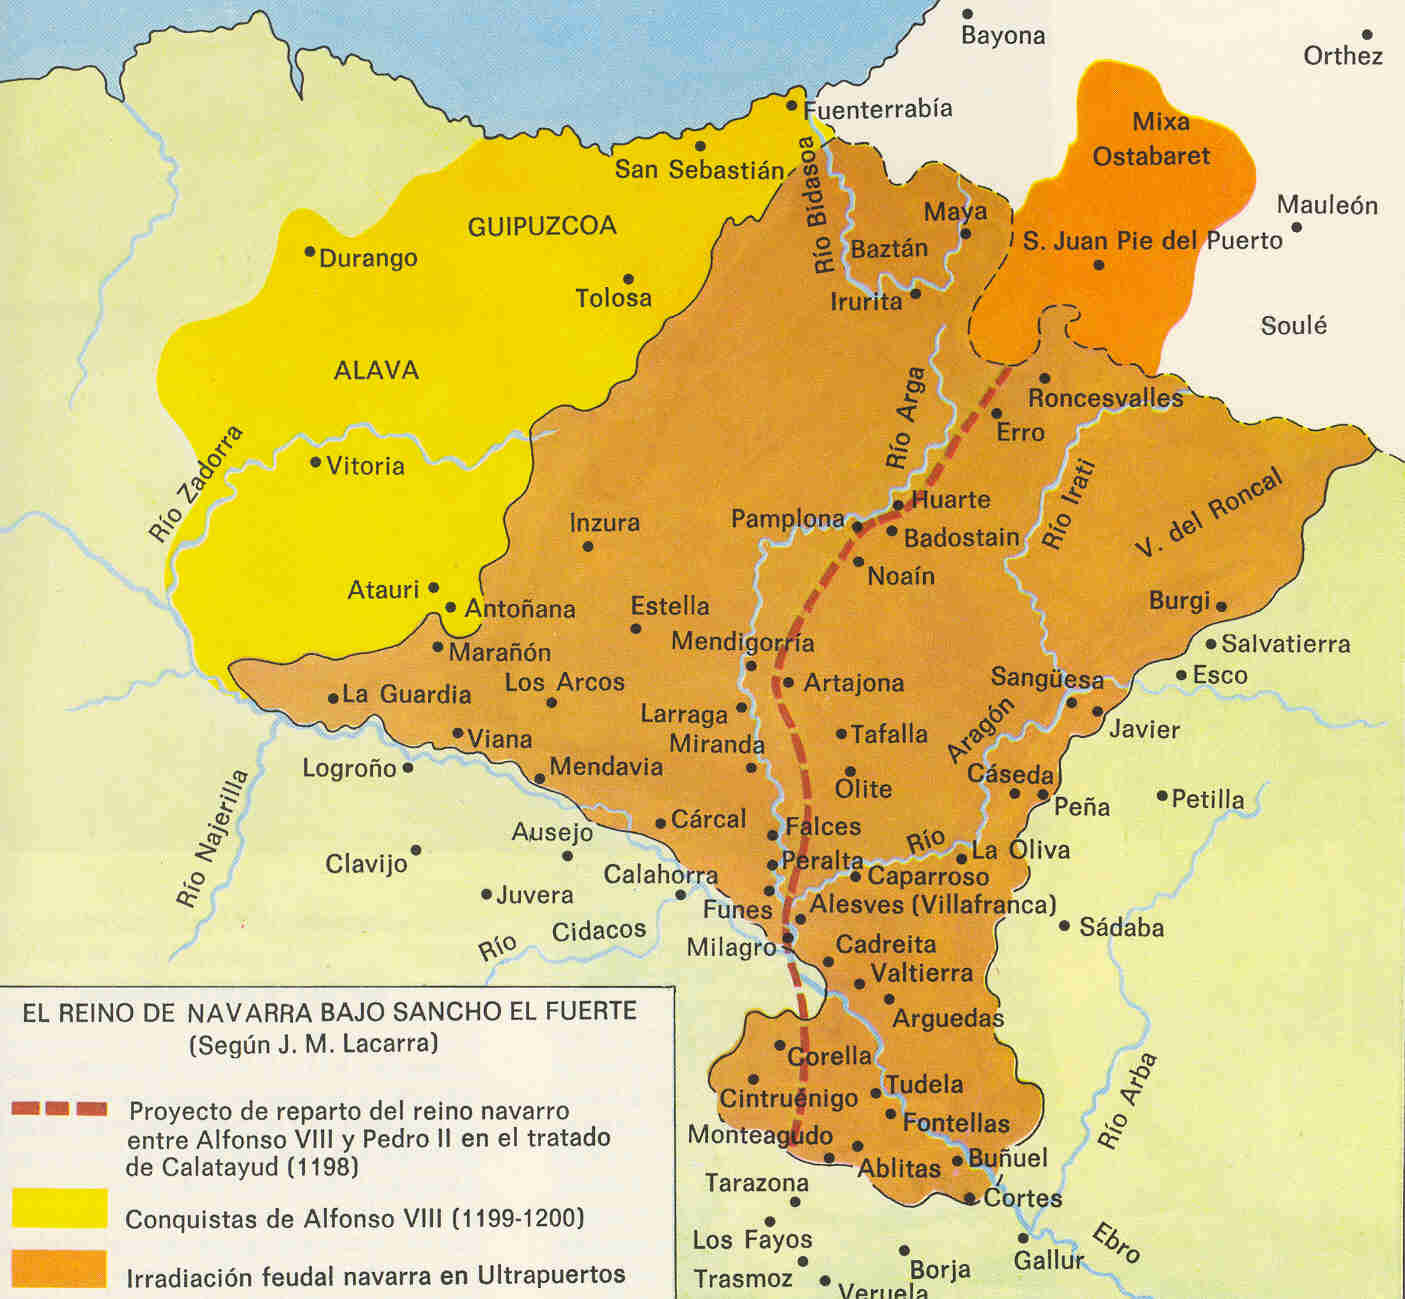 Kingdom of Navarre under Sancho VII